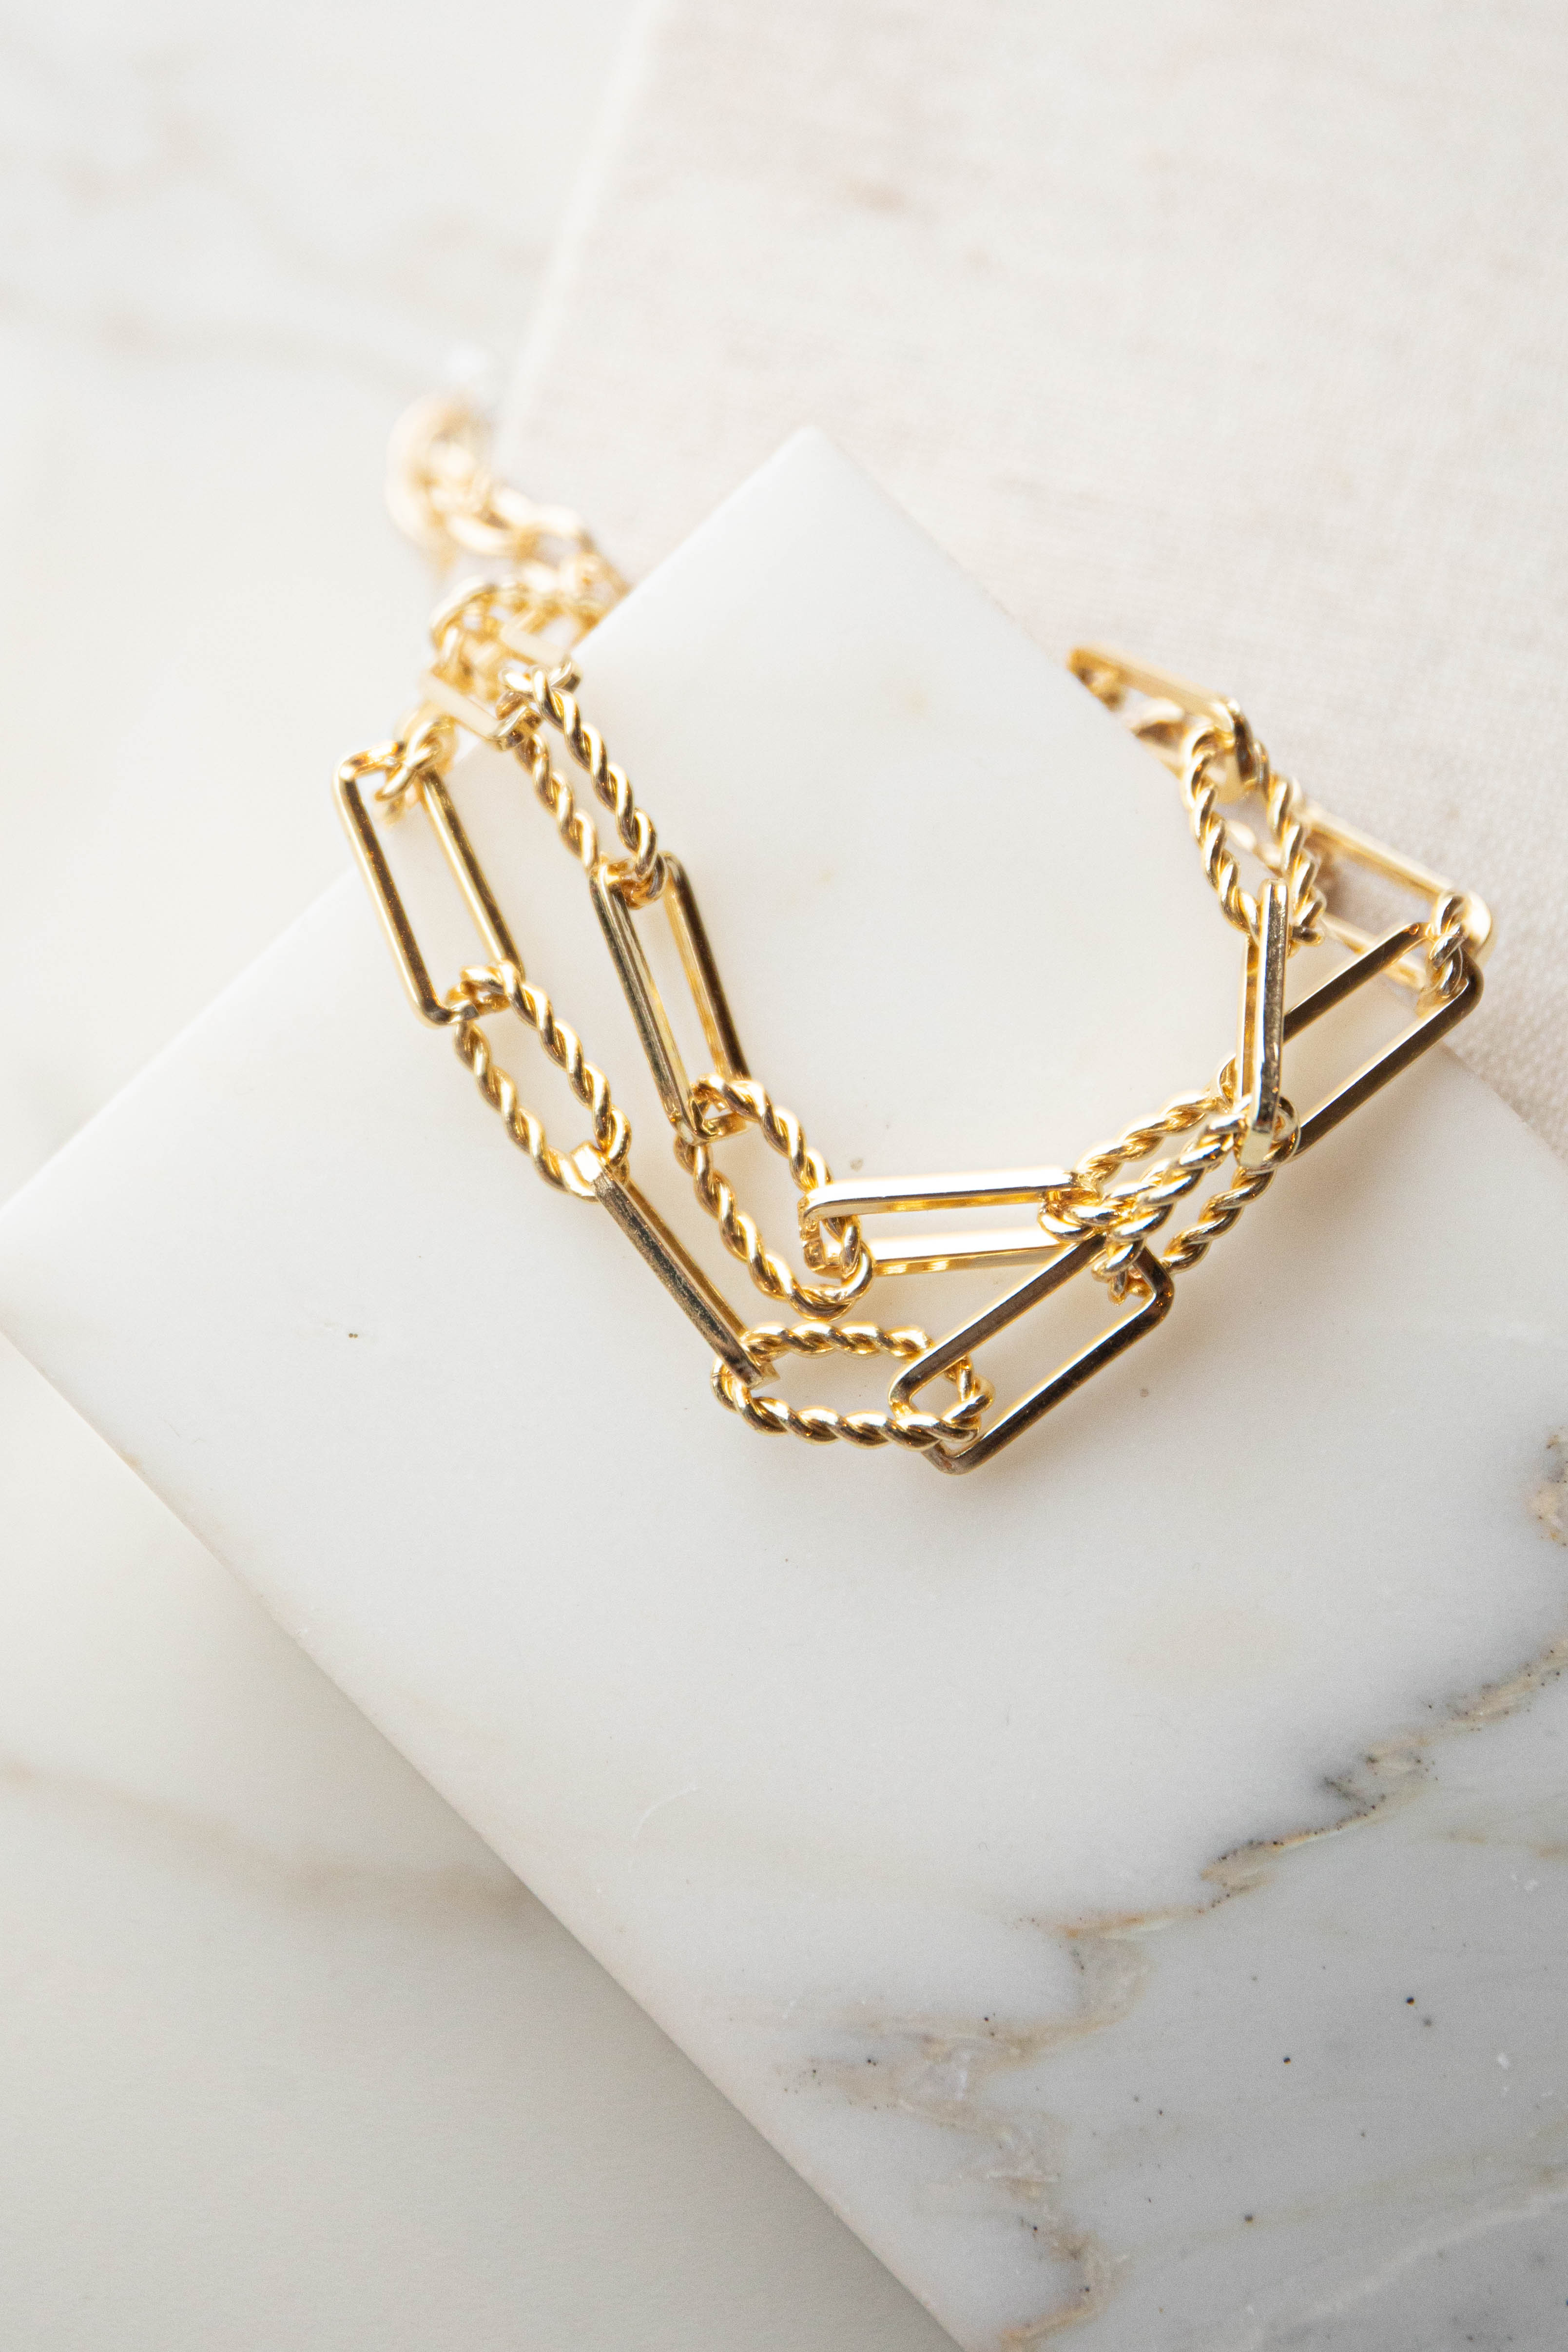 Gold Twisted Paperclip Chain Bracelet